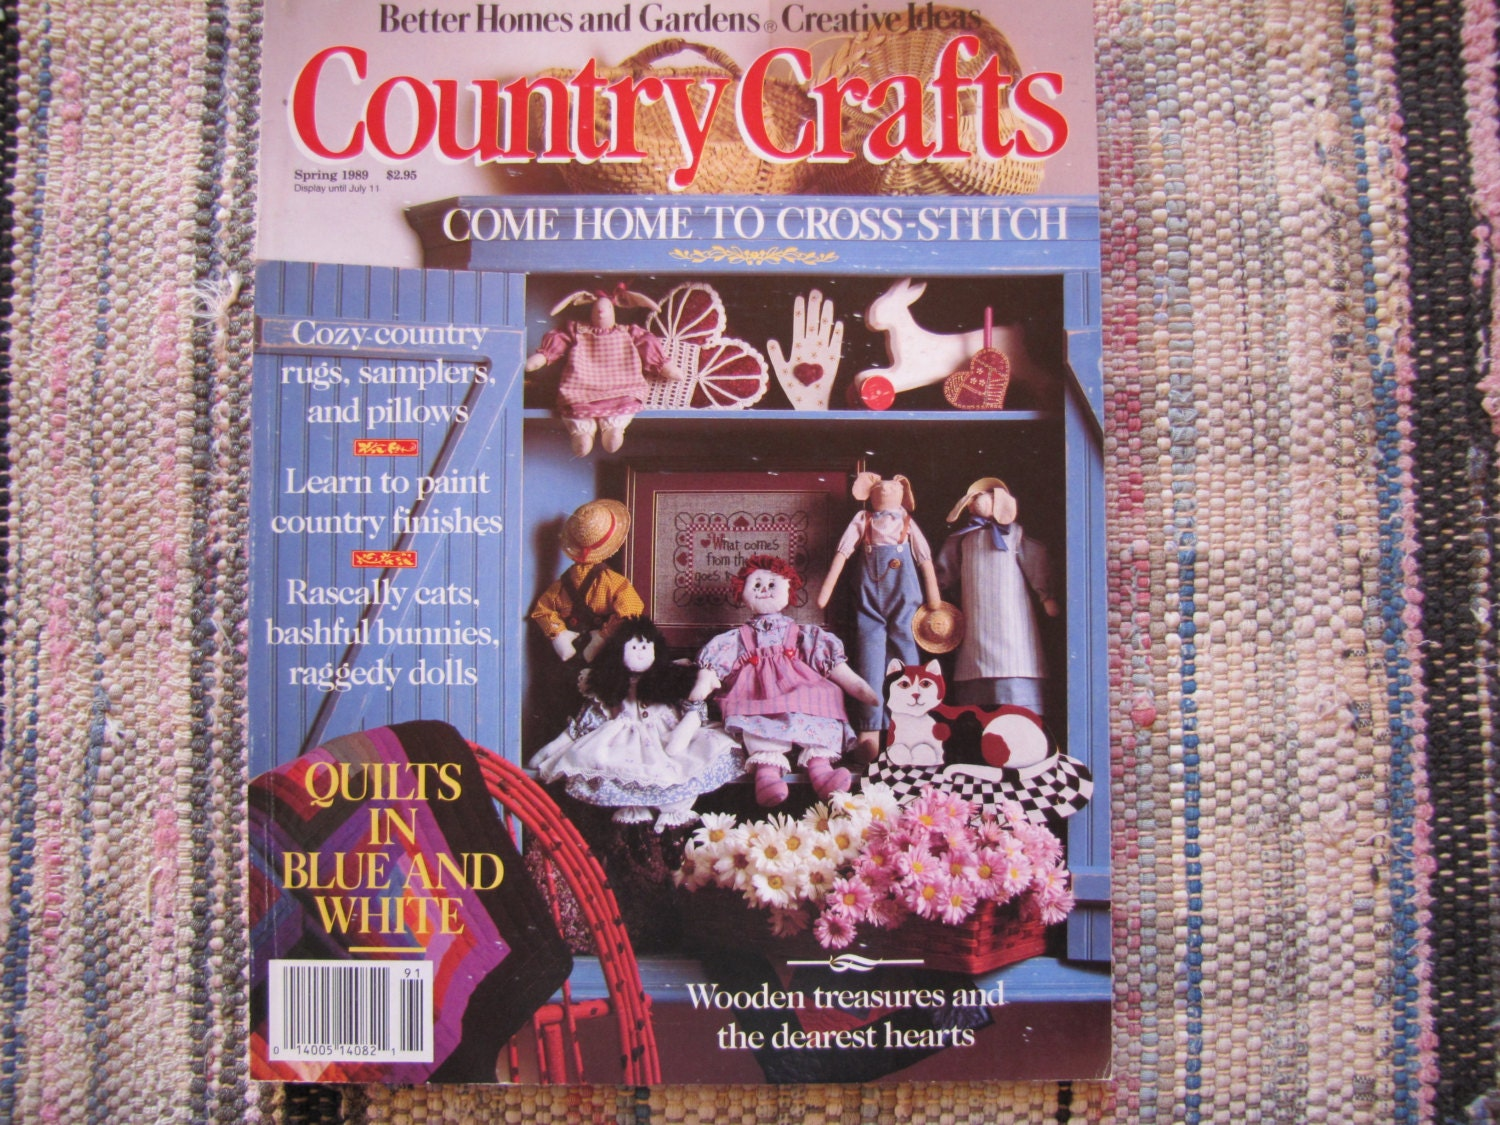 Cross stitch country crafts magazine back issues - Sold By Dandeedion